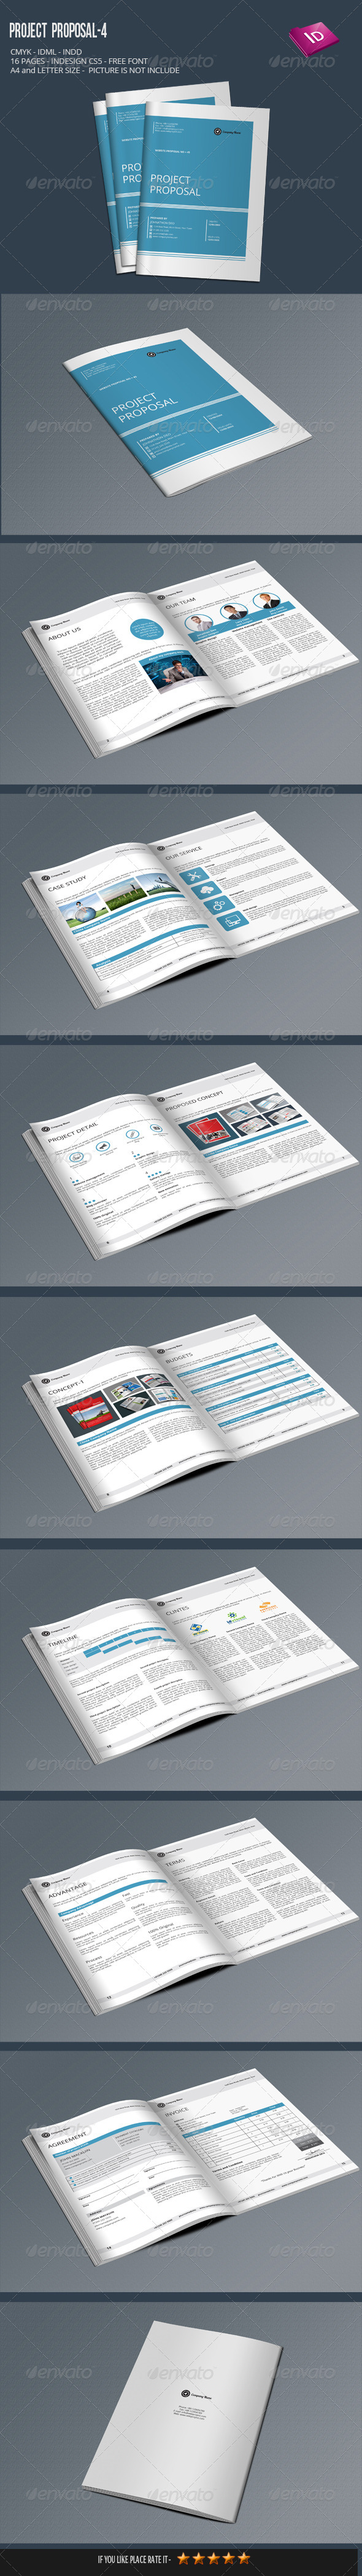 GraphicRiver Project Proposal-4 7942518